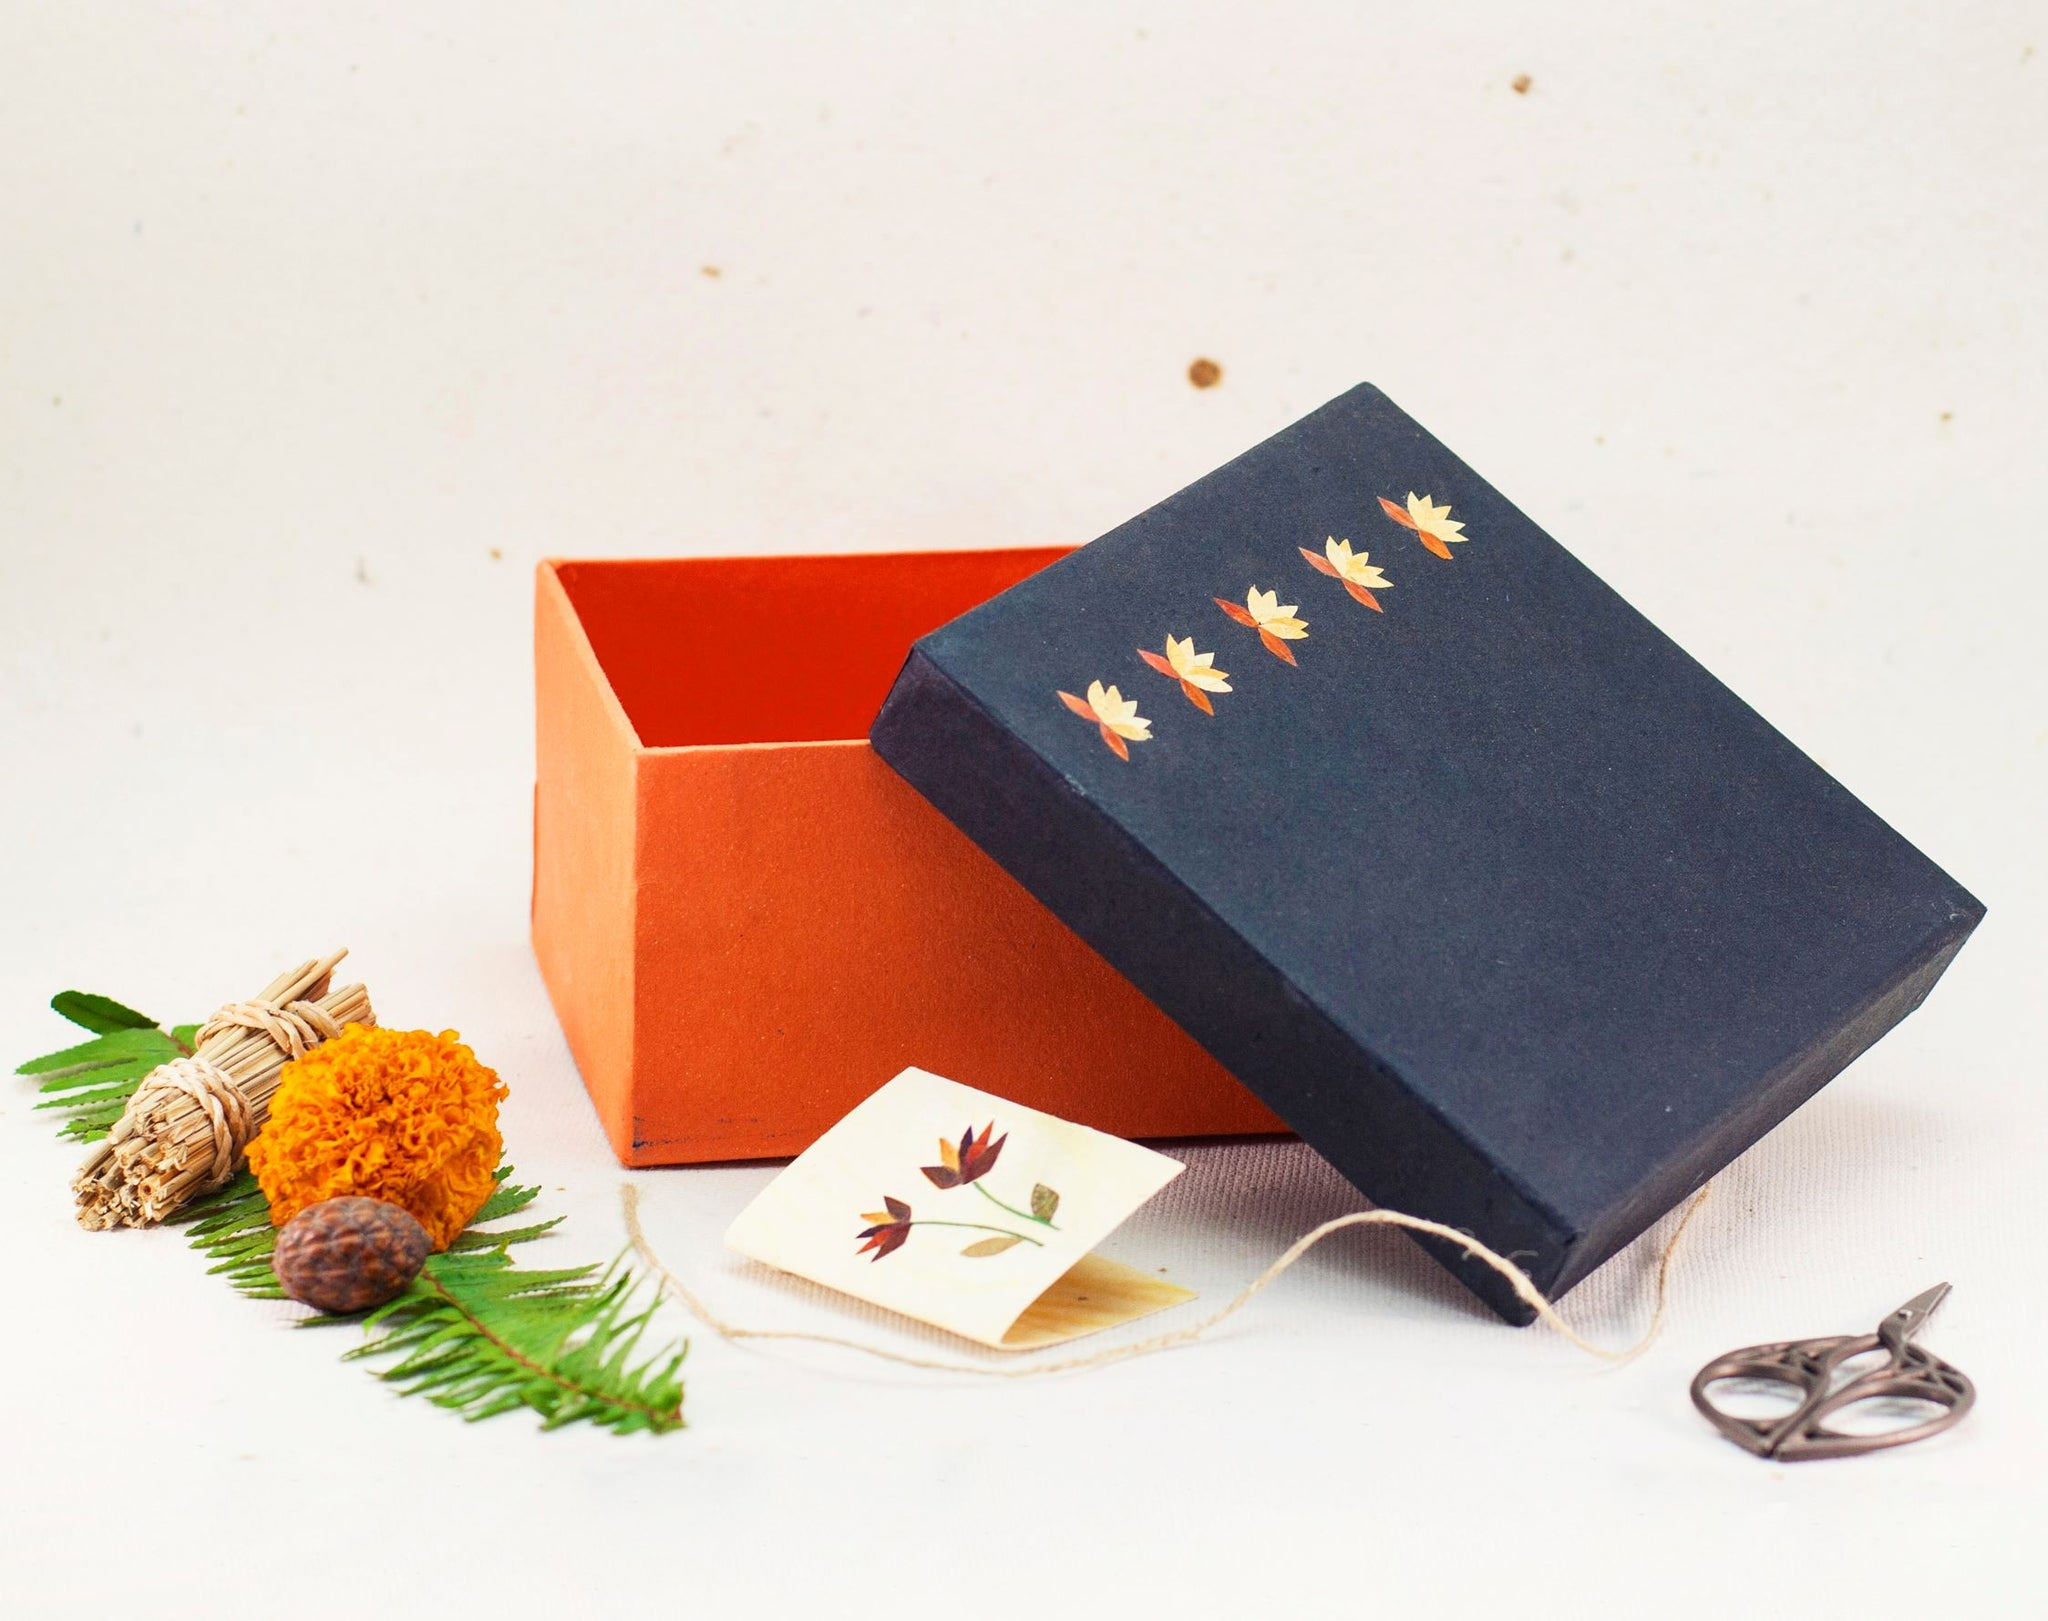 Blue/ Red Small Floral Giftbox Handmade by Women Artisans